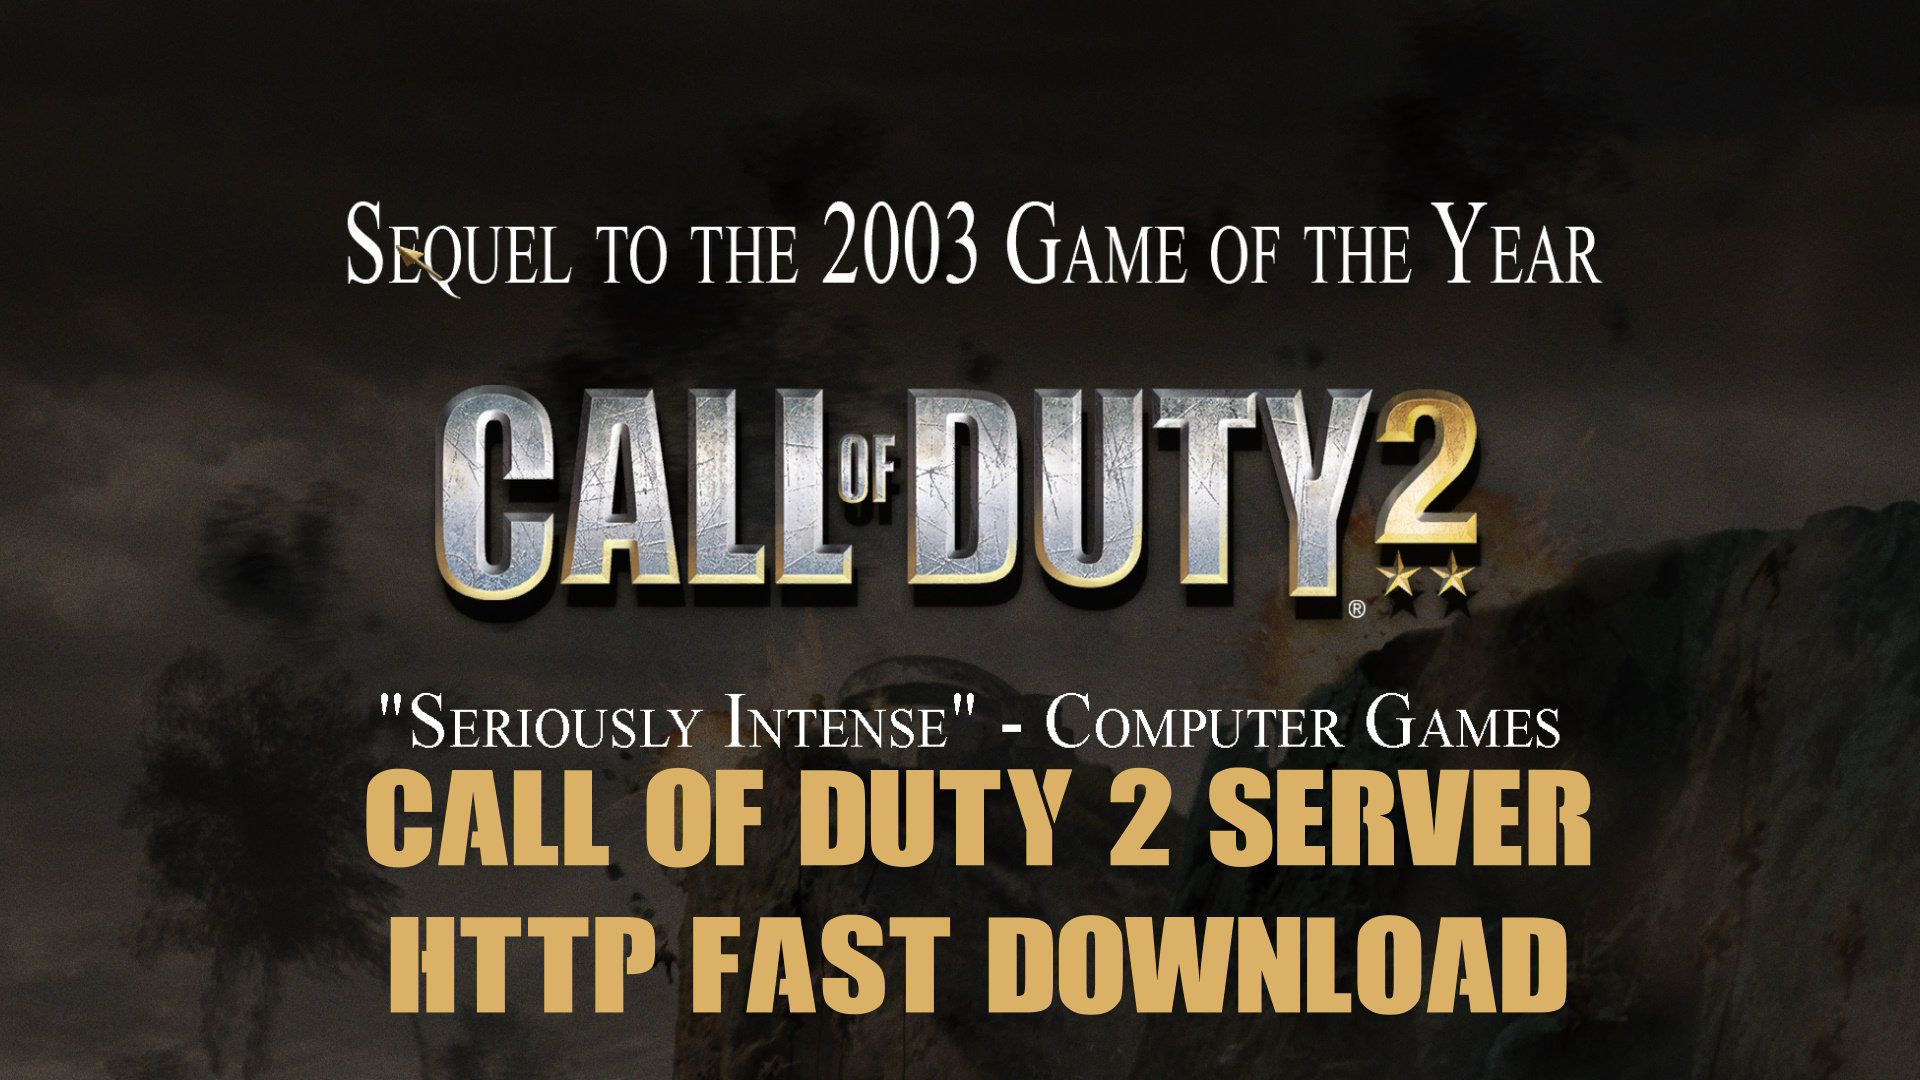 Call of Duty 2 Server Fast Download